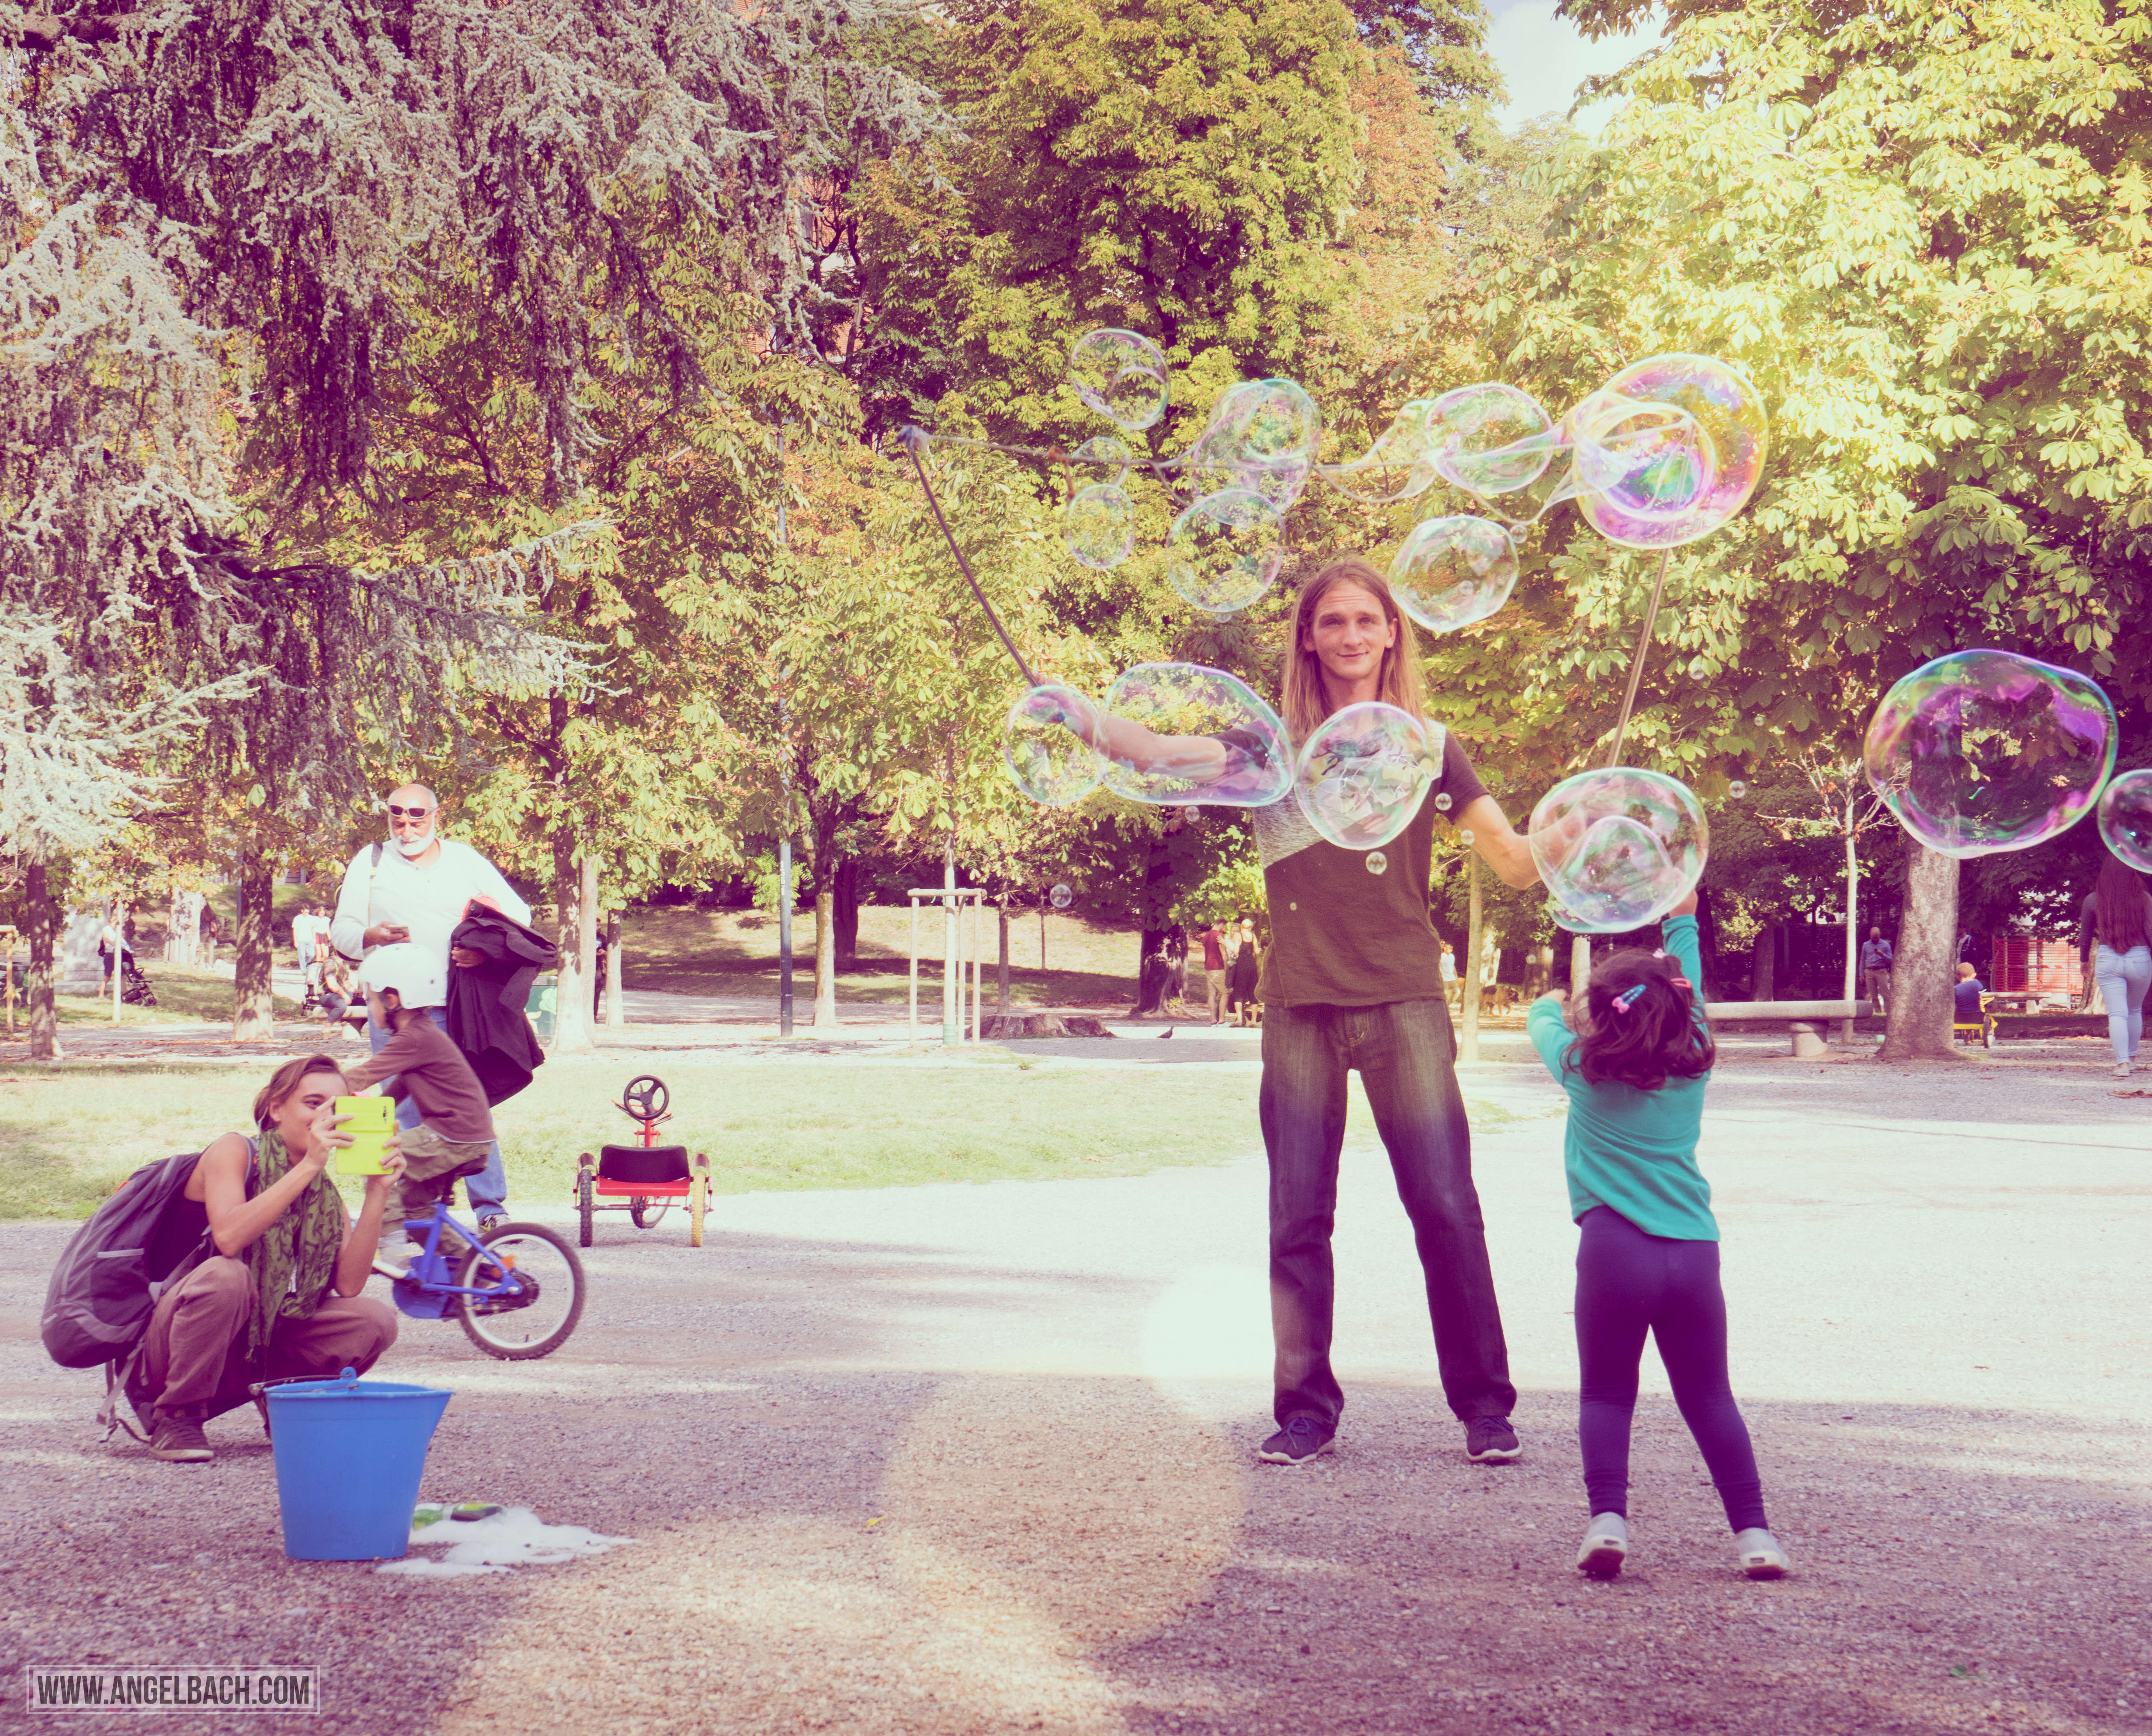 Milan, Park, Kids, playing, bubbles, Bubble Man, Nature, Italy, Photography